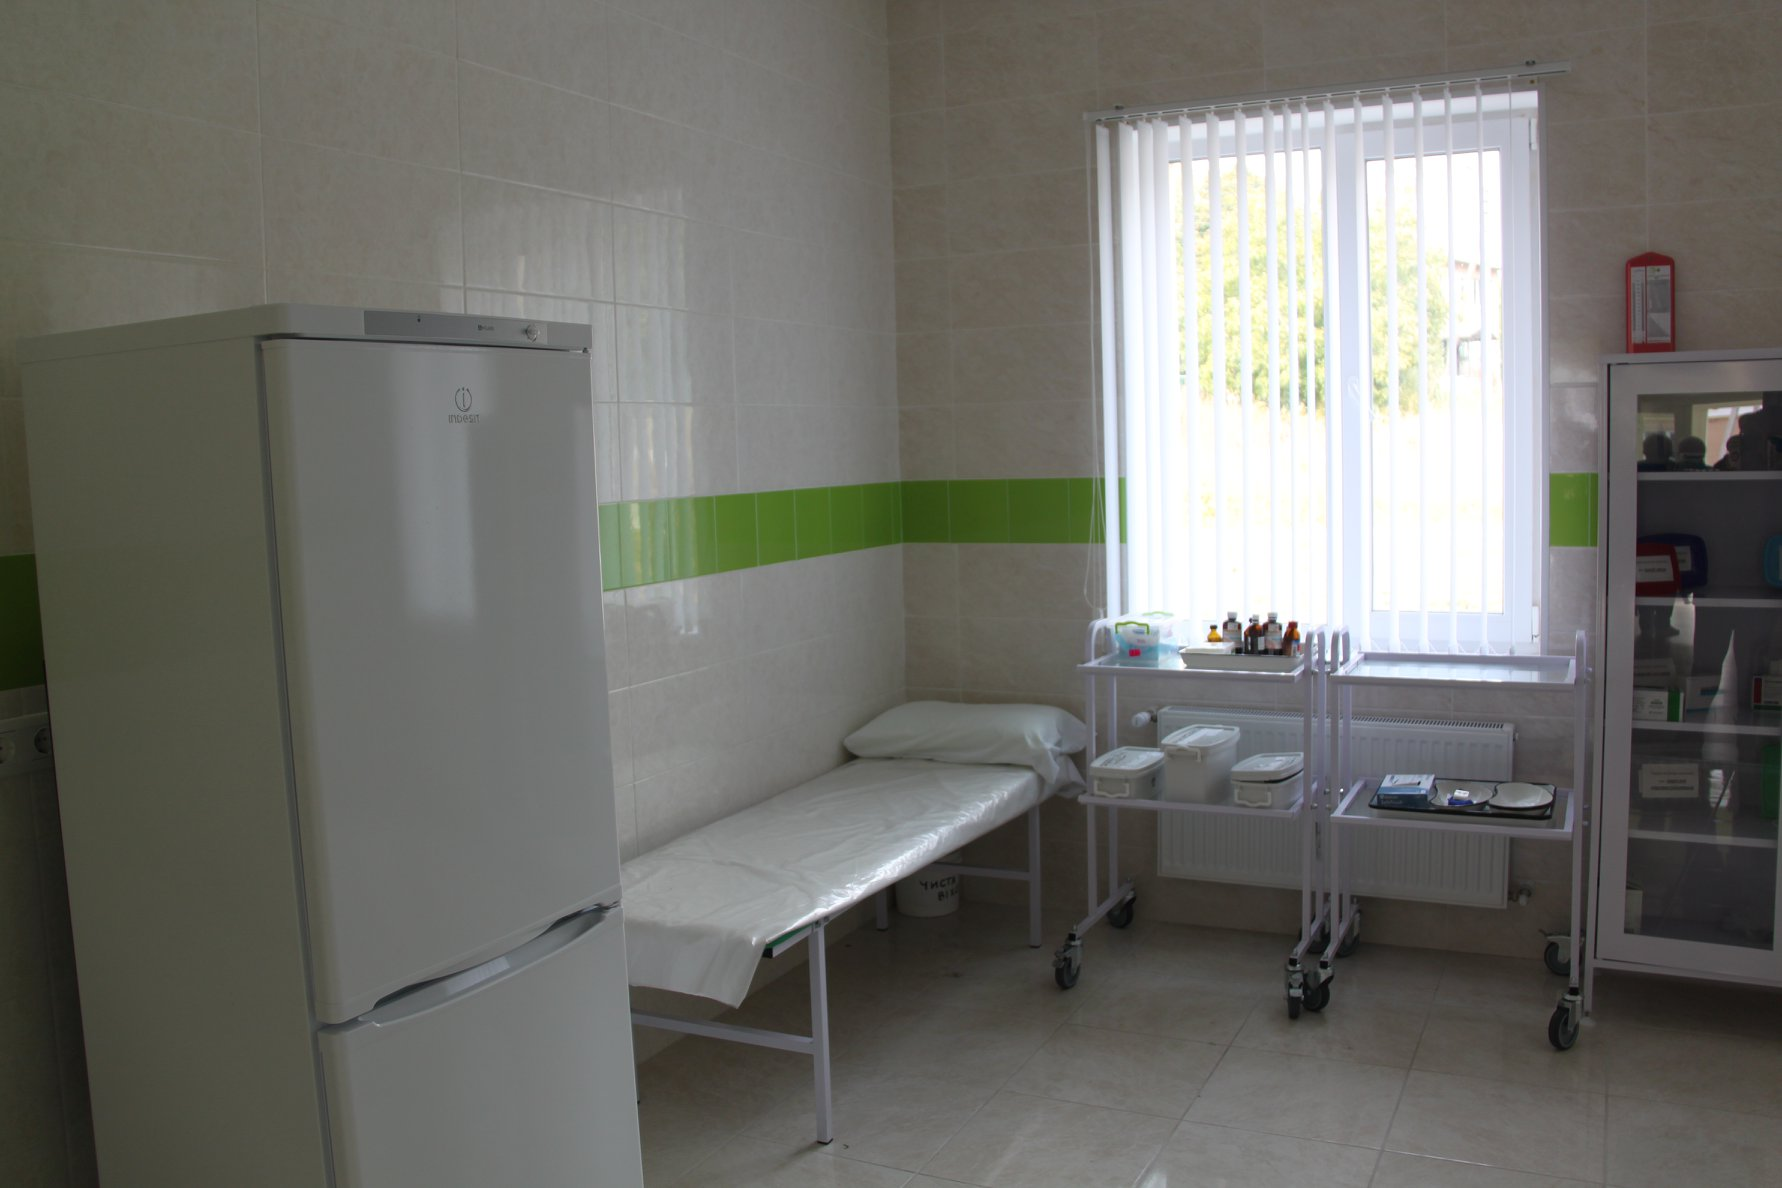 New rural outpatient clinics being opened in Ukraine